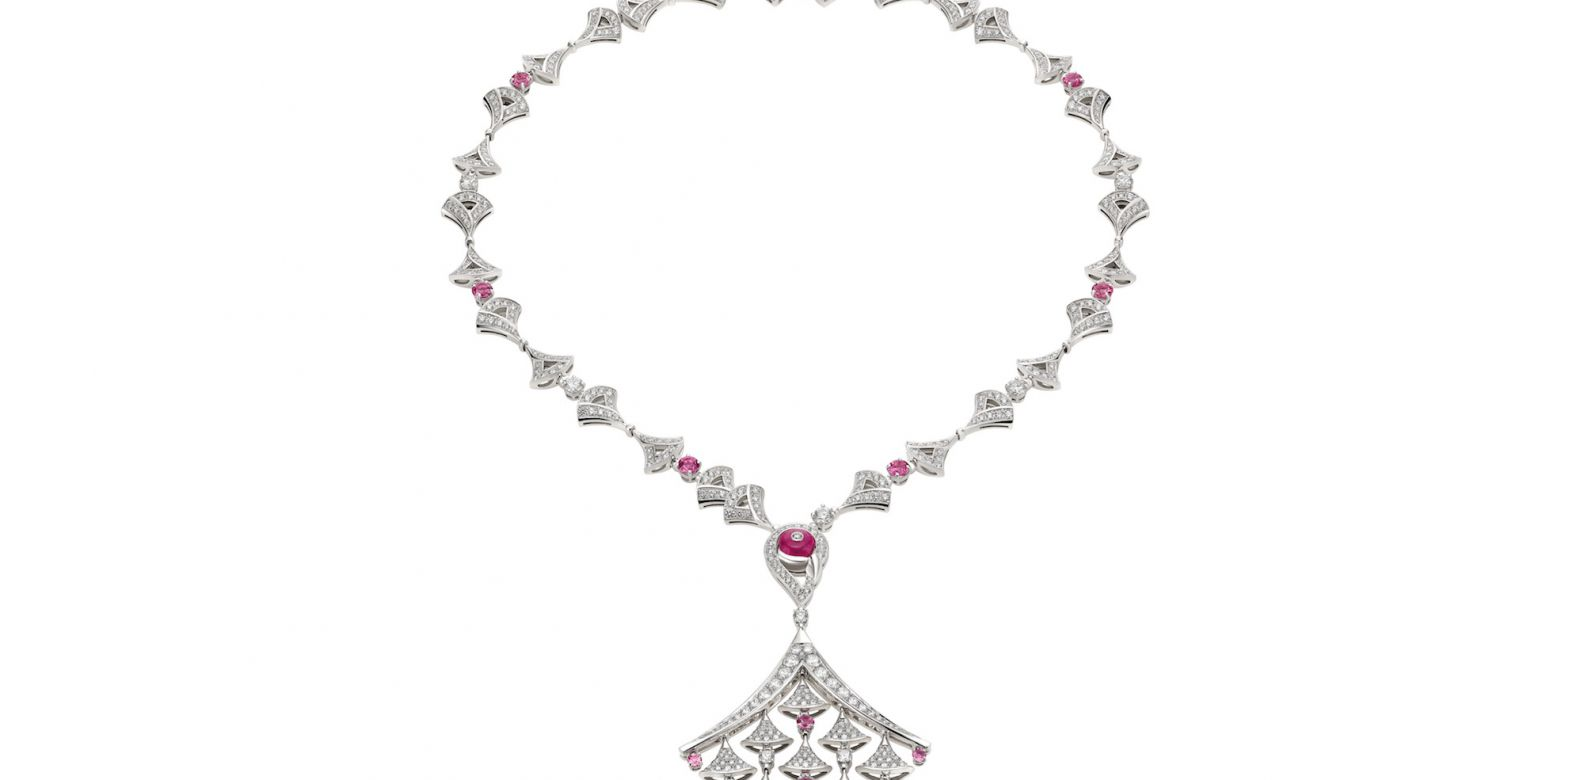 Necklace in white gold with pink tourmaline, rubellite and diamonds (7.06cts)